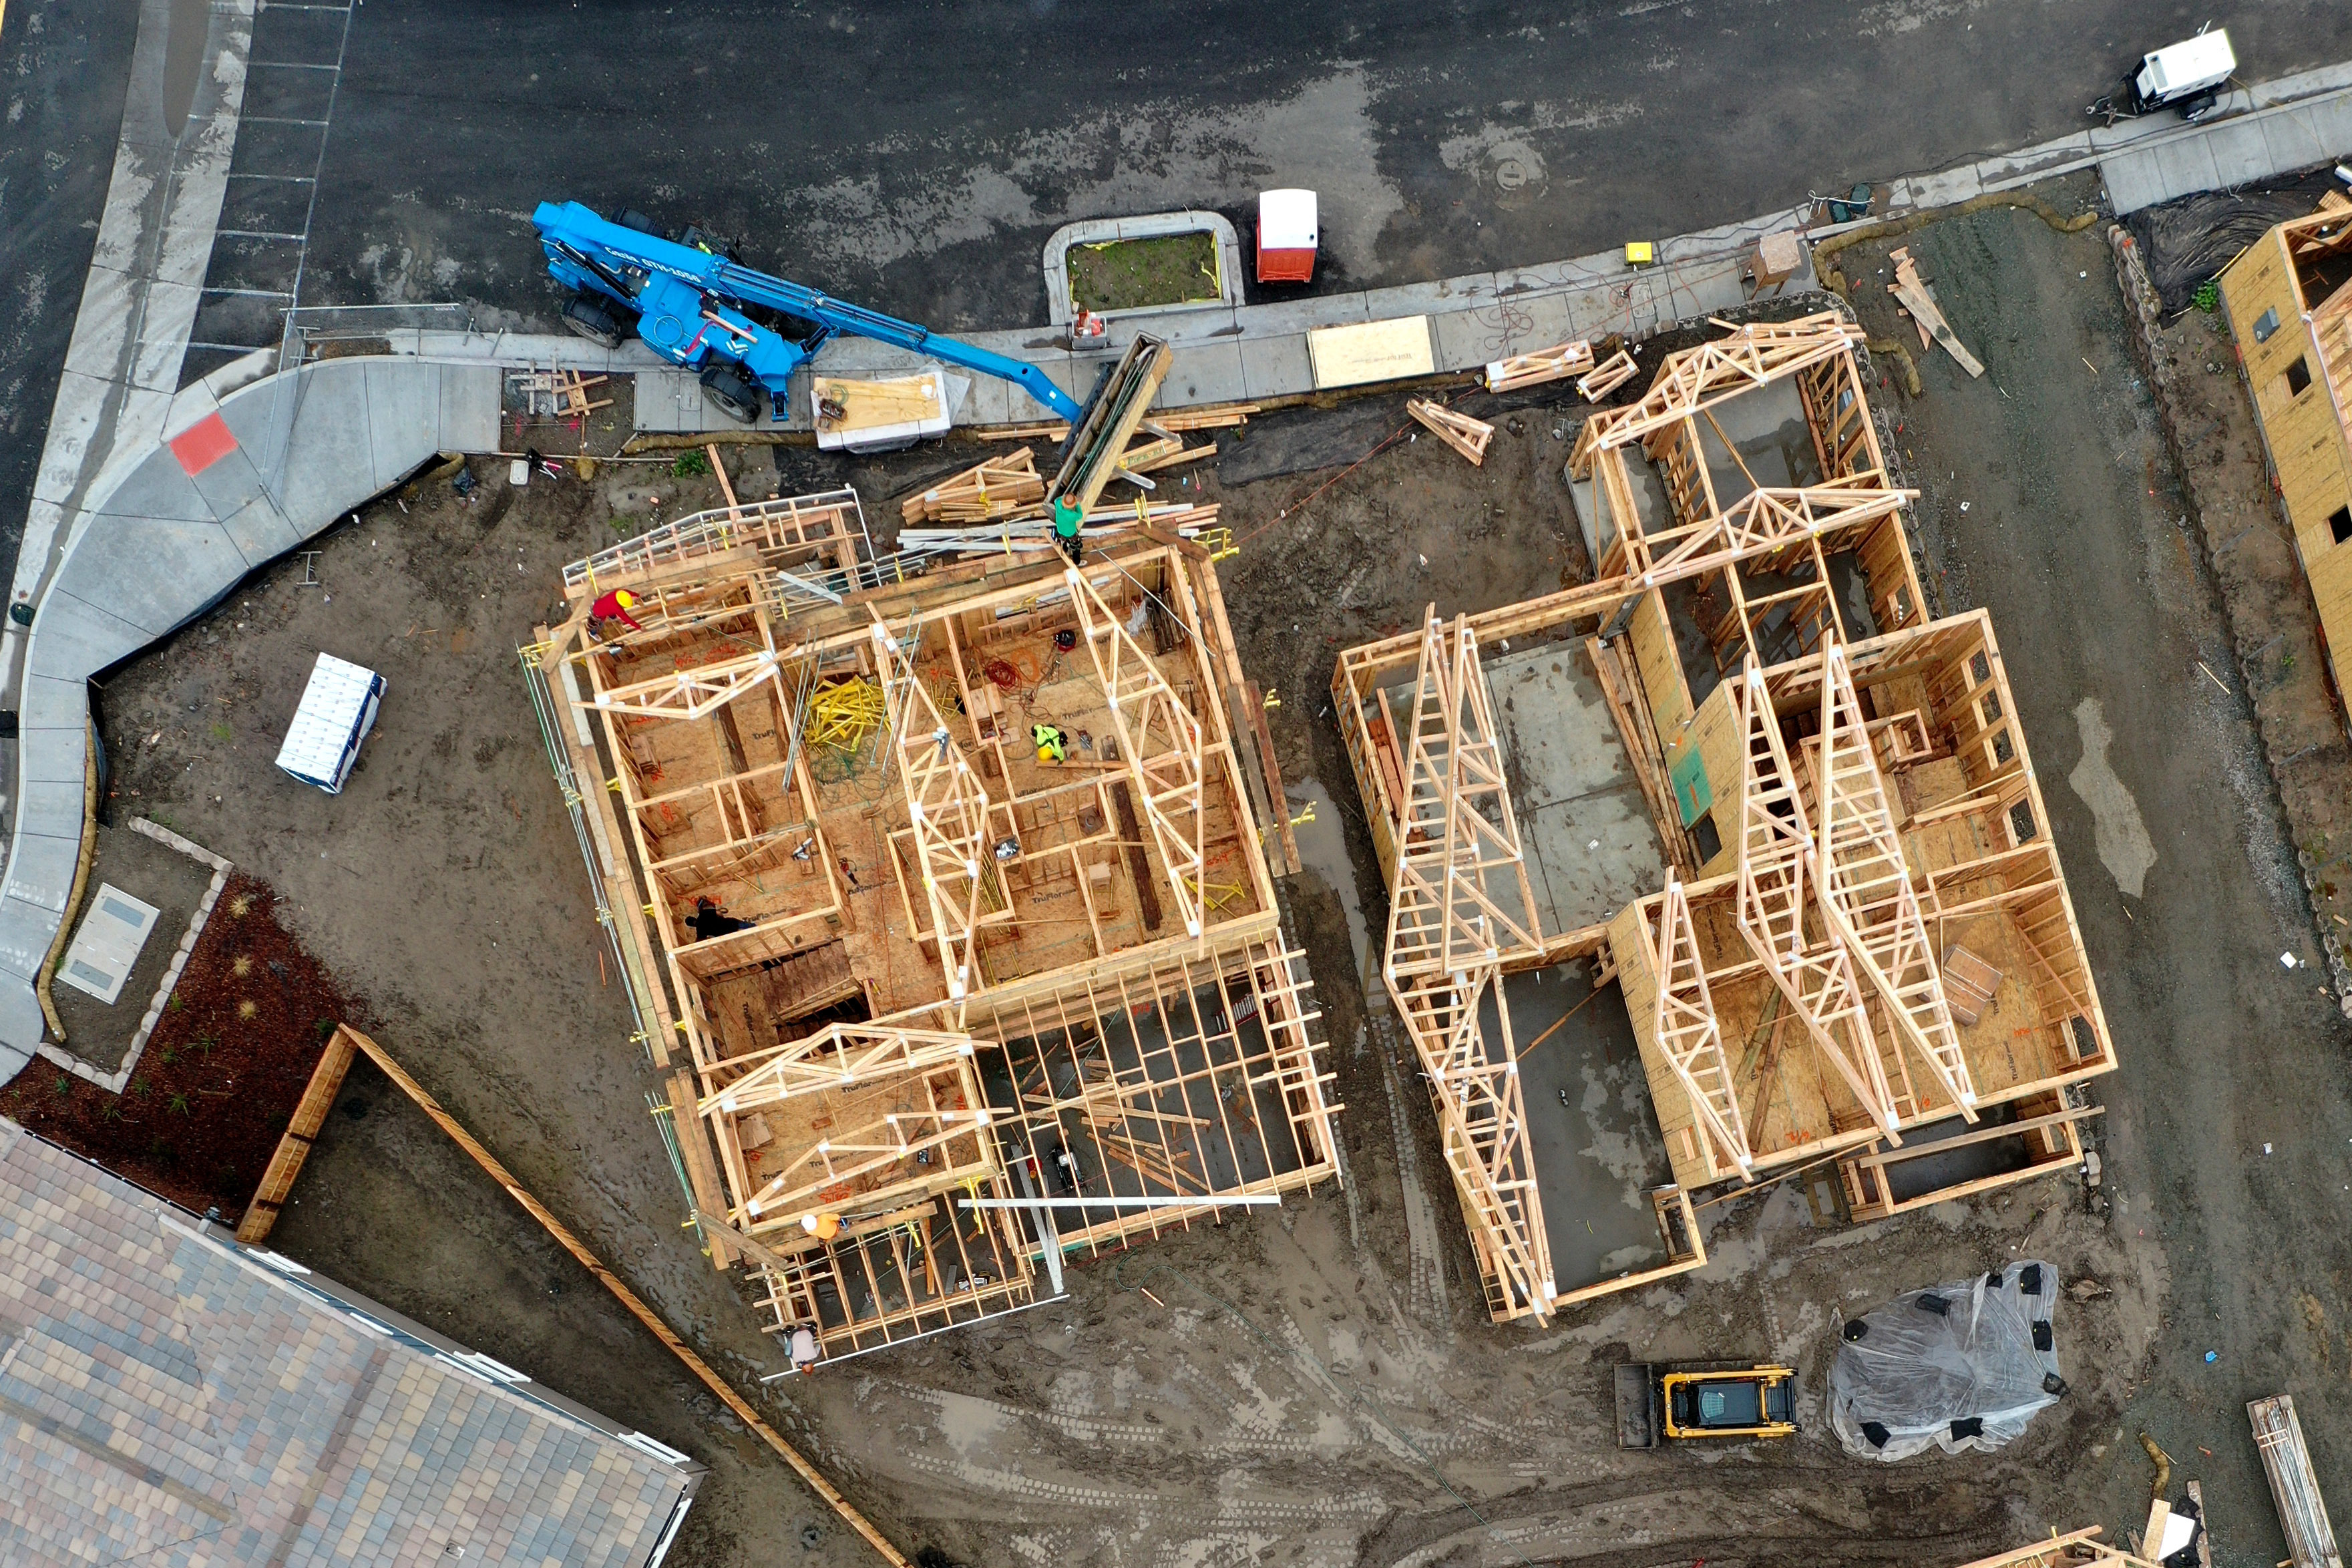 An aerial view shows homes under construction at a housing development in Petaluma, Calif., in January. As housing prices surge around the country, Democratic presidential candidates are offering plans to address the shortage of affordable homes and apartments.